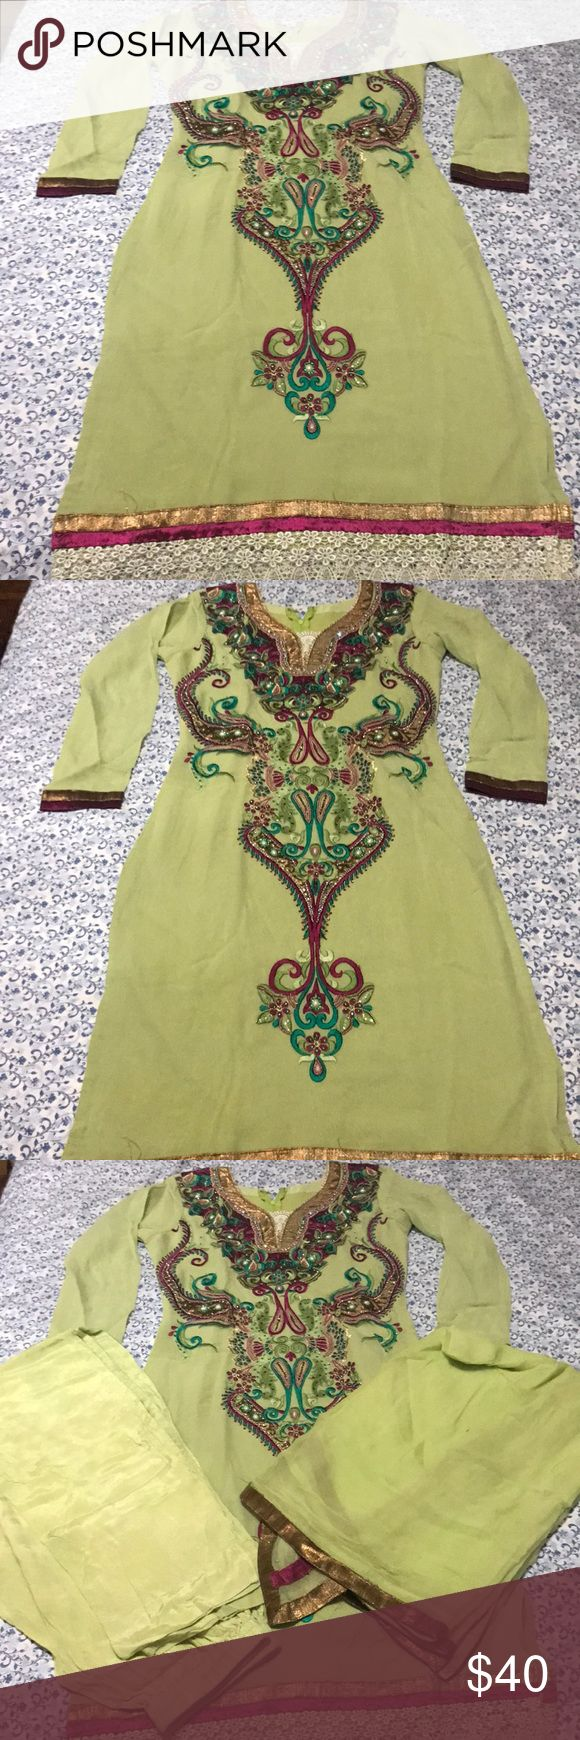 Pakistani Shalwar Kameez Pistachio Green Pakistani Dress with multicolored embroidery on top of the Shalwar. Comes with pants and a dupatta. Beautiful dress for dawaats and parties. It's gorgeous to wear!   #pakistani#shalwarkameez#indianclothes#pakistaniwear#beautiful#gorgeous#indianwear Dresses